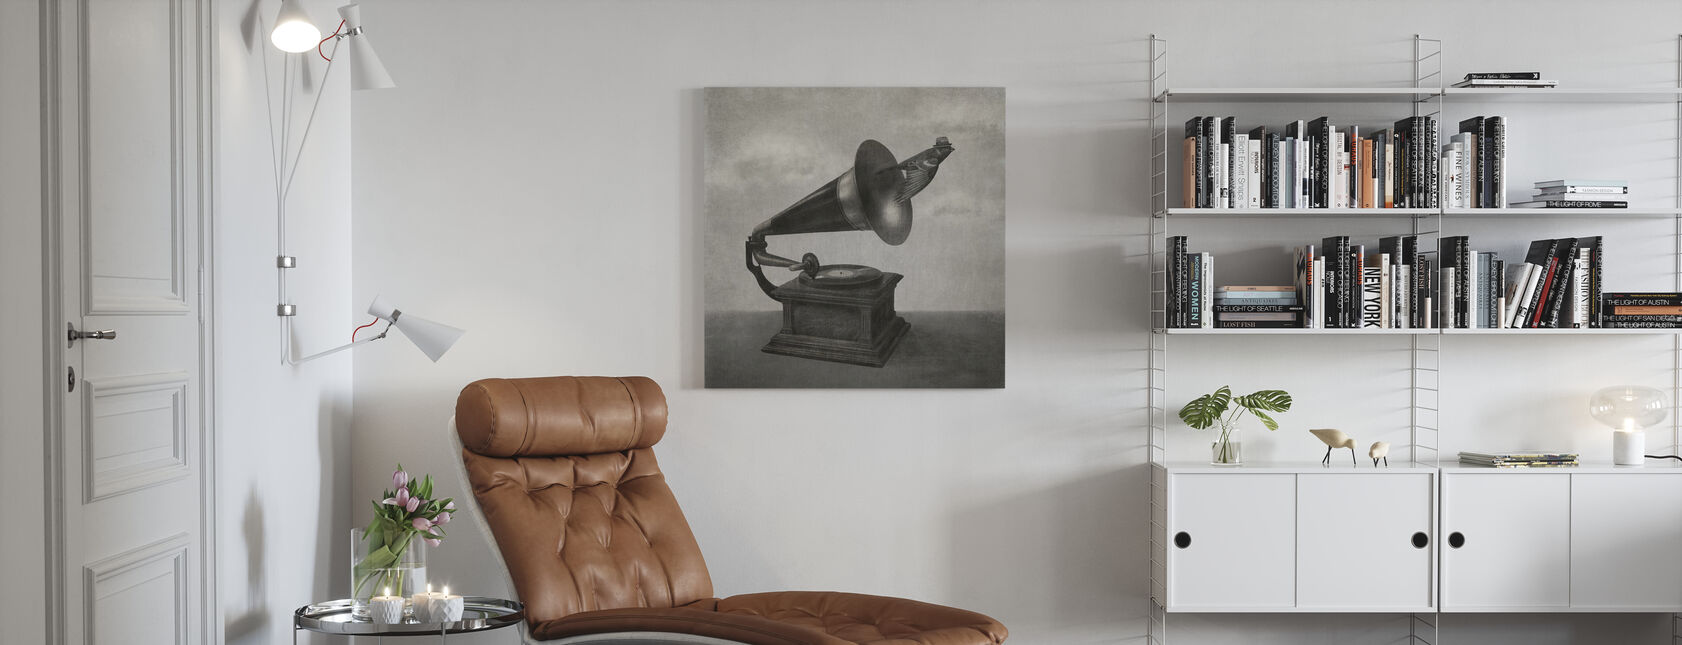 Vintage Songbird Mono - Canvas print - Living Room